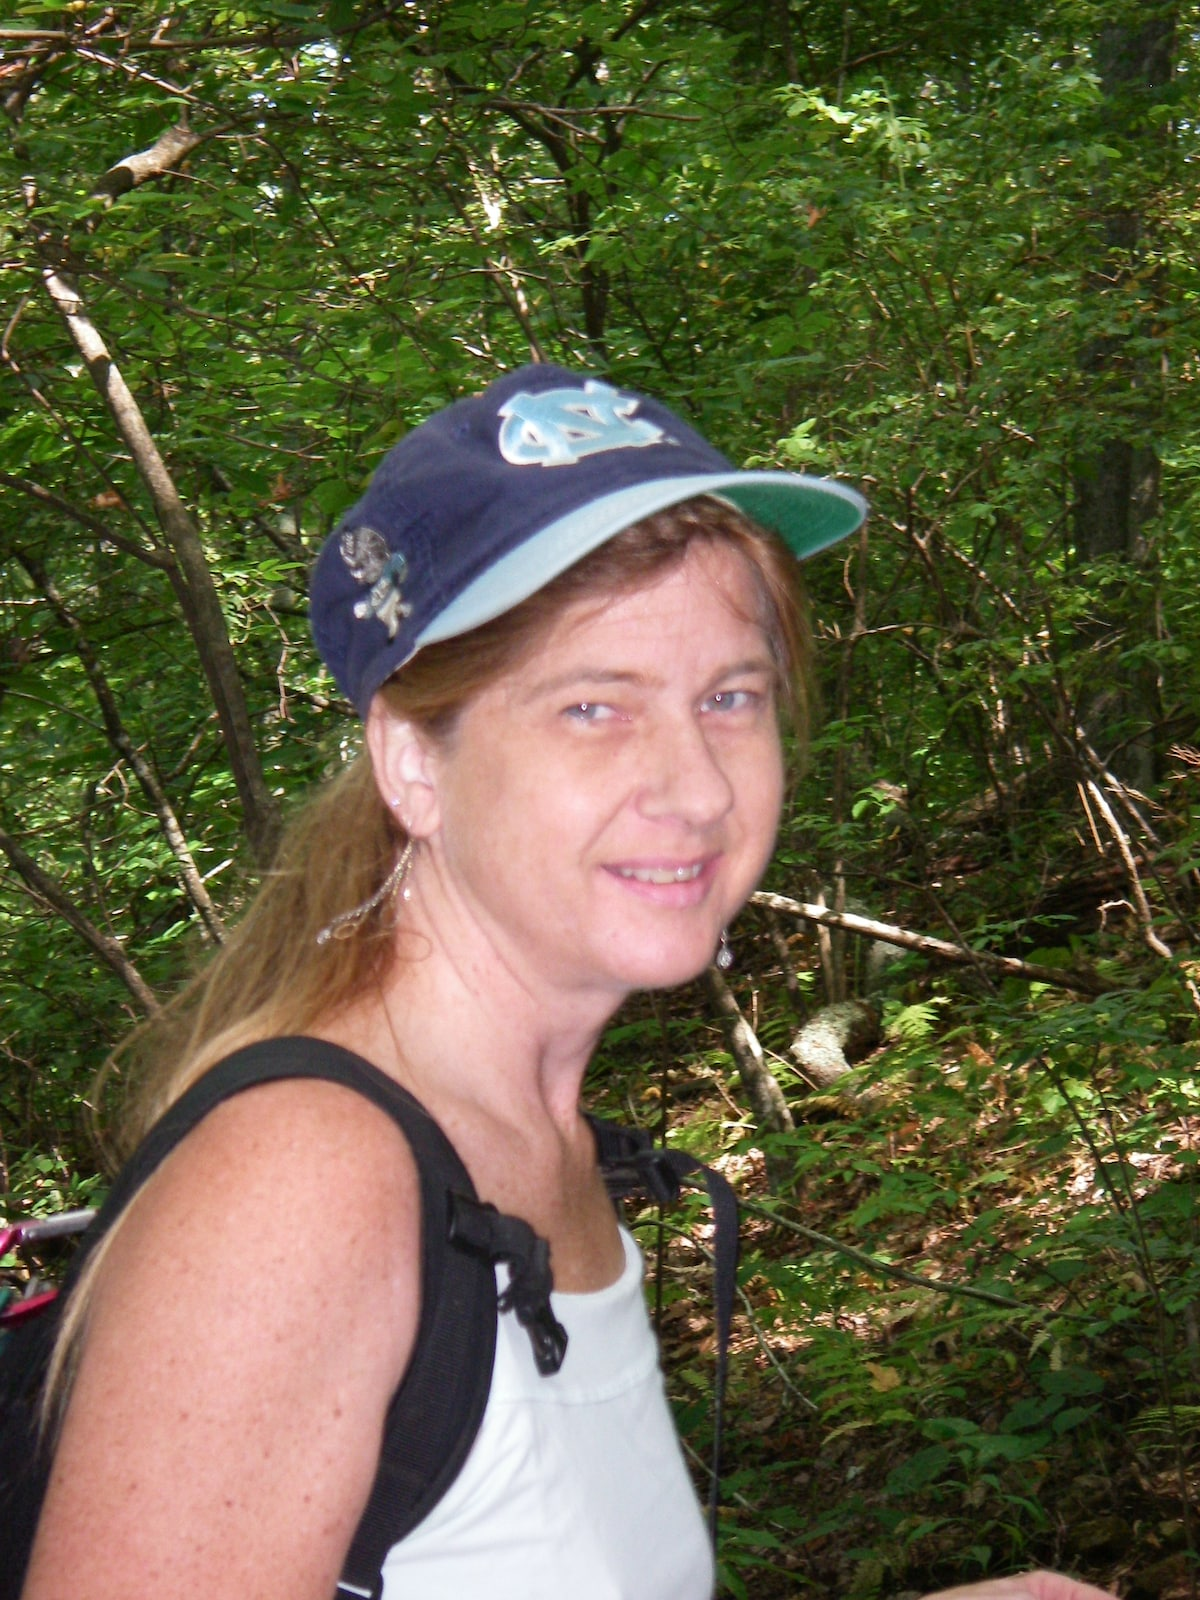 I am section Hiking the Appalachian Trail and have